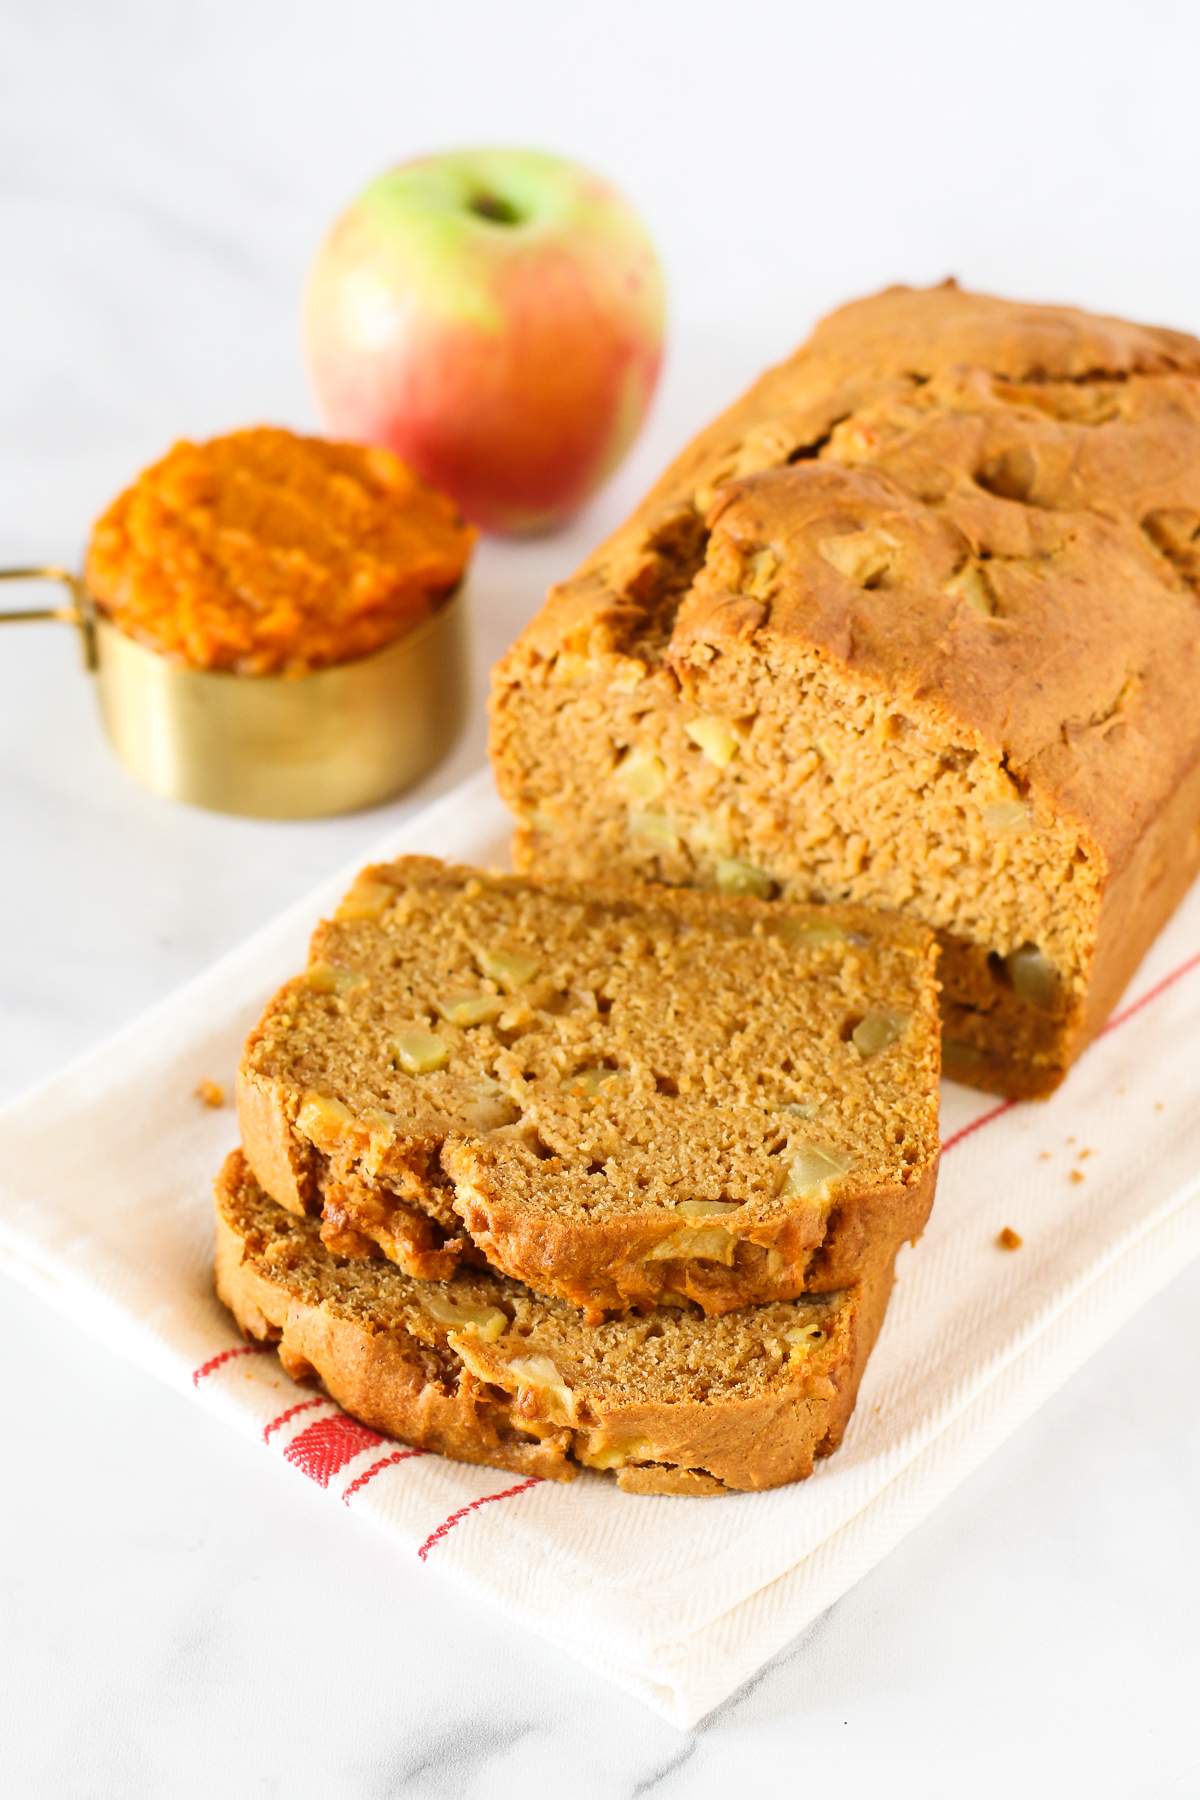 Gluten Free Vegan Pumpkin Apple Bread. Thick slices of pumpkin bread, loaded with fresh apples. A lovely fall treat.